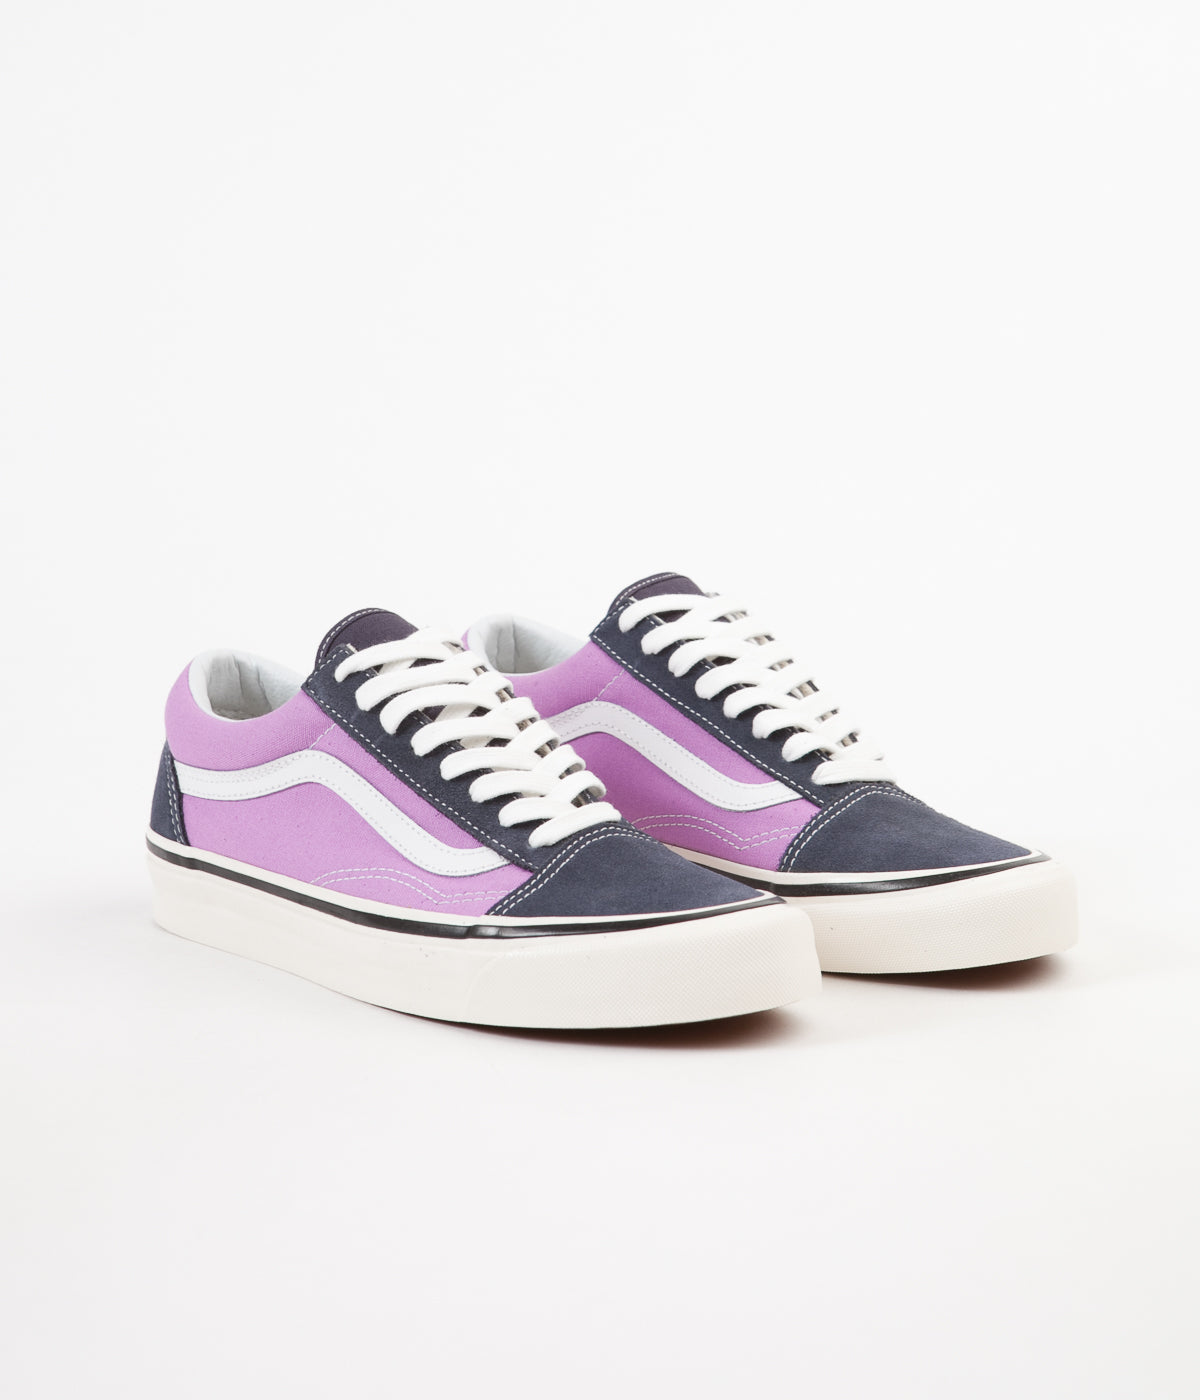 ... Vans Old Skool 36 DX Anaheim Factory Shoes - OG Navy   OG Lilac ... 4db8995fc95f